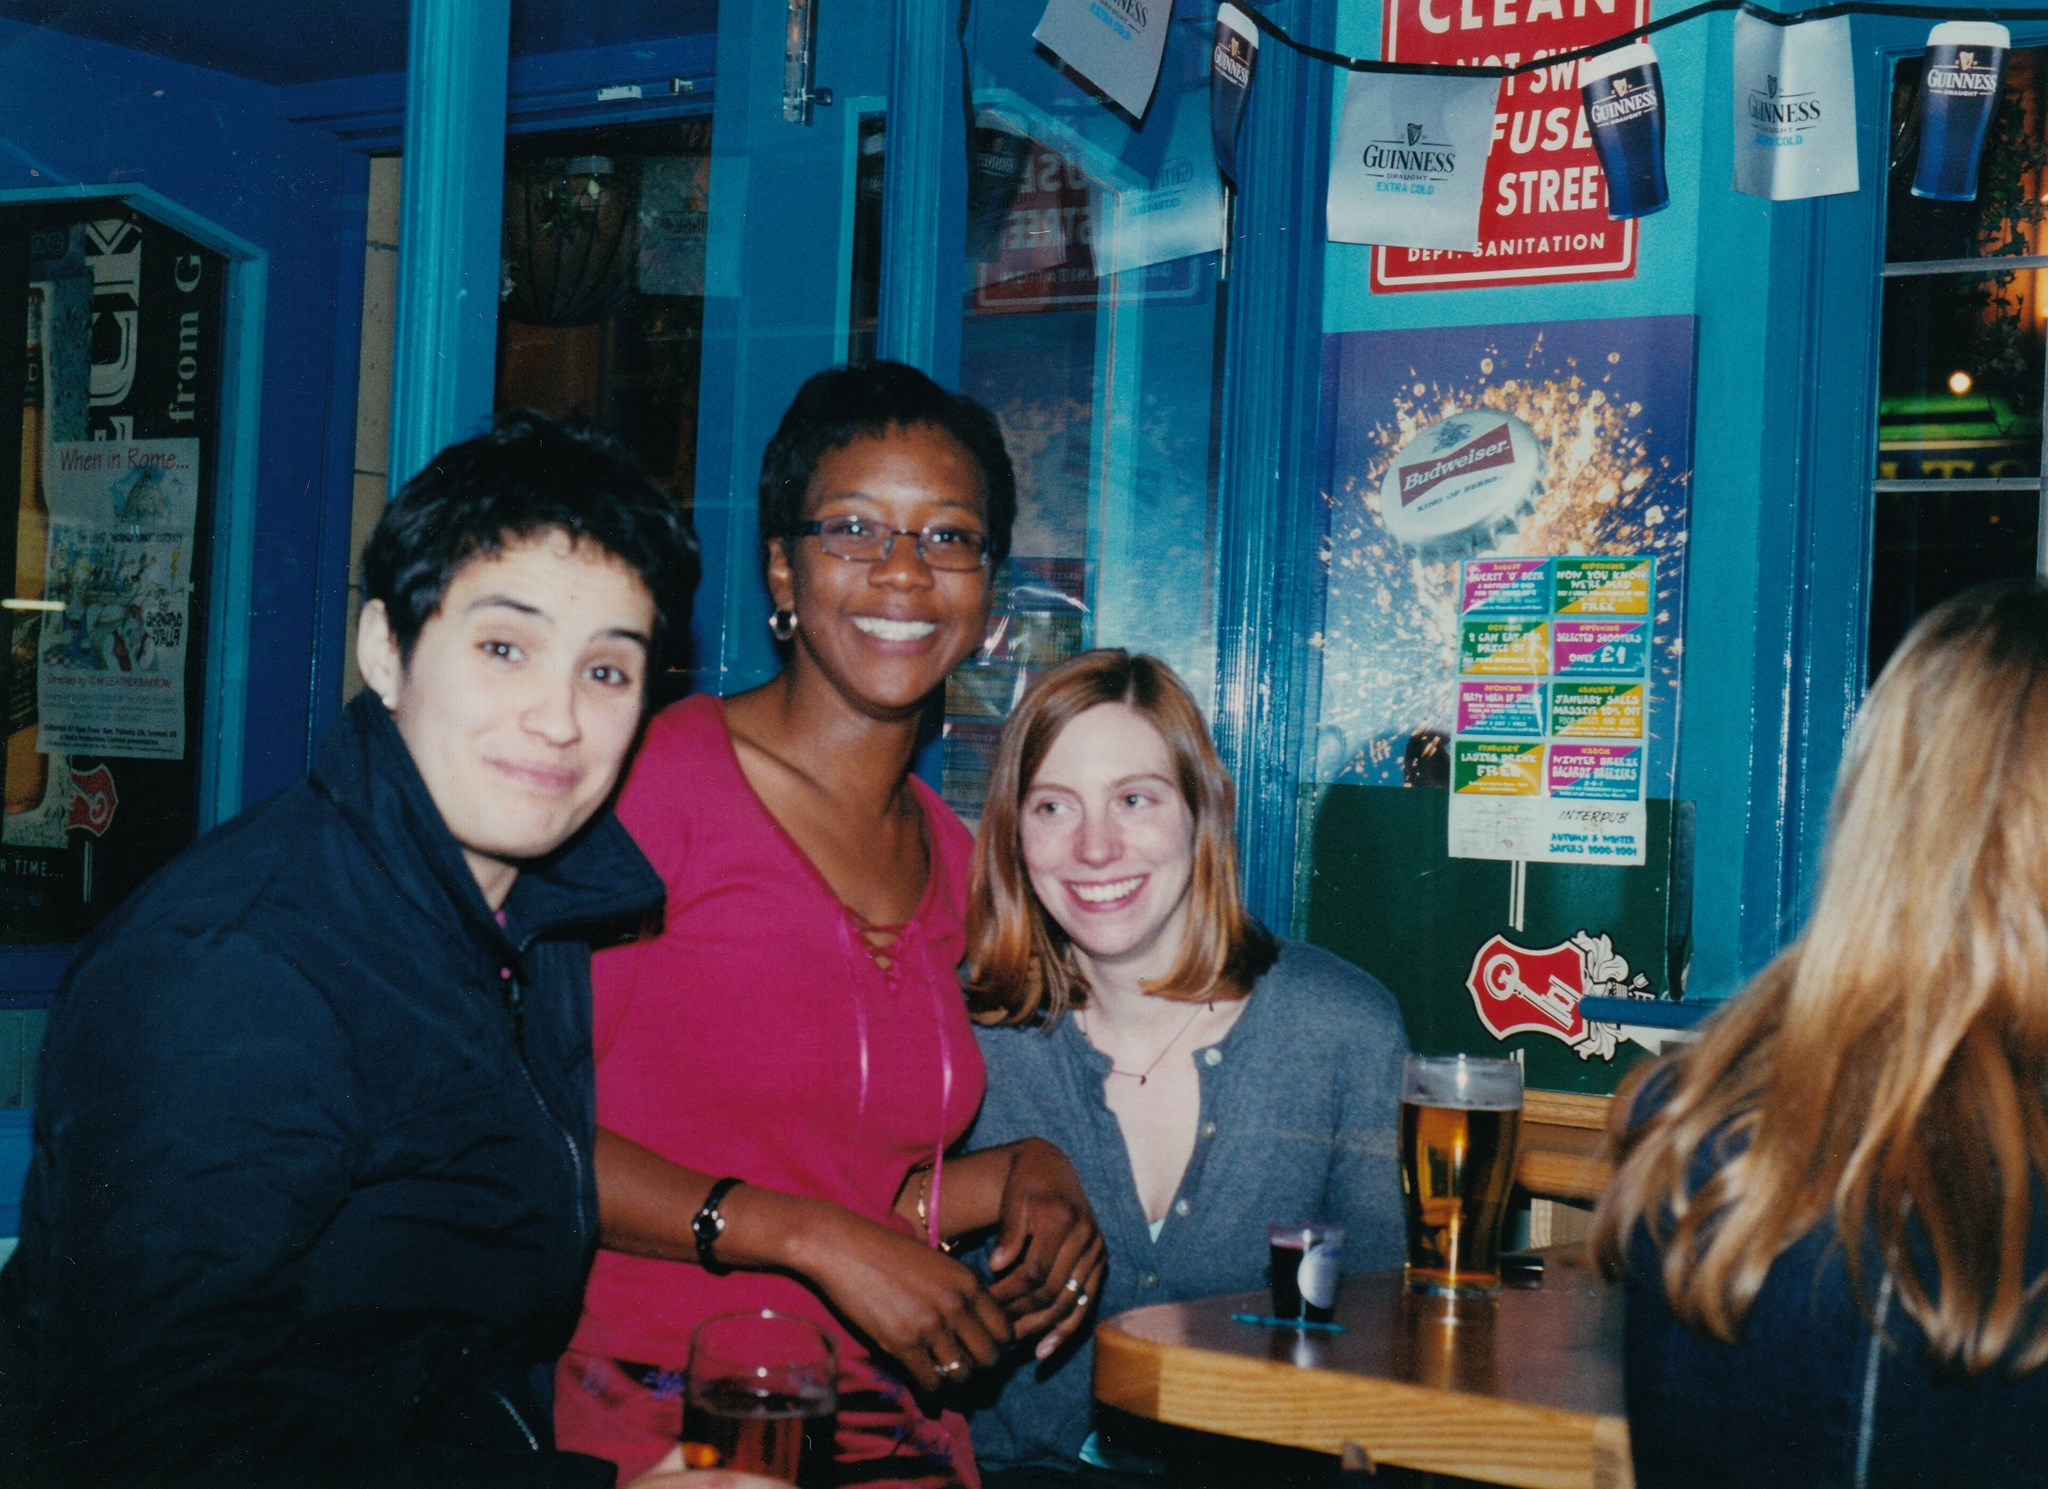 A night out in London - me, Jen and Luce. Late 90s/early noughties